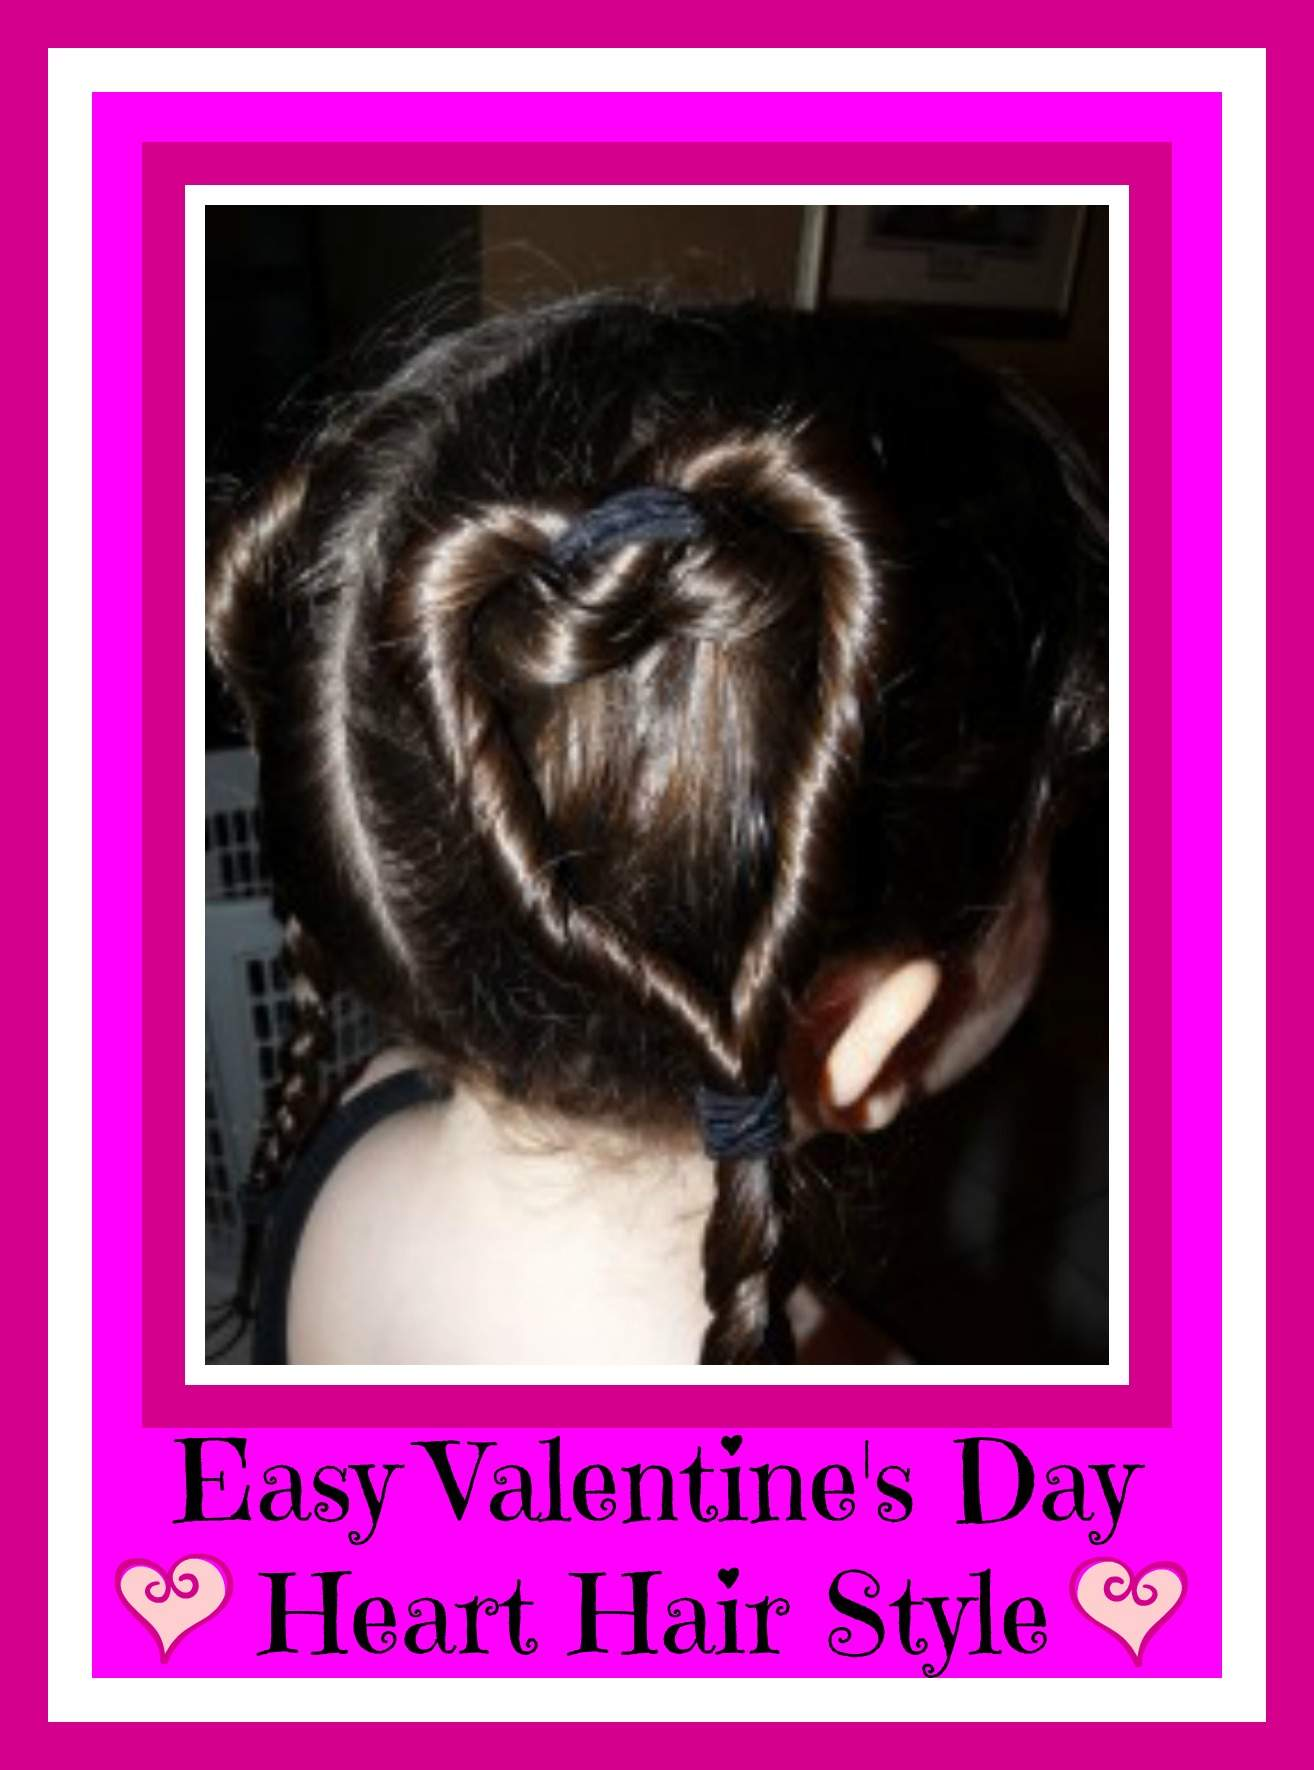 Selena Gomez New Hairstyle Hair Is Our Crown - Hairstyle for valentine's dance